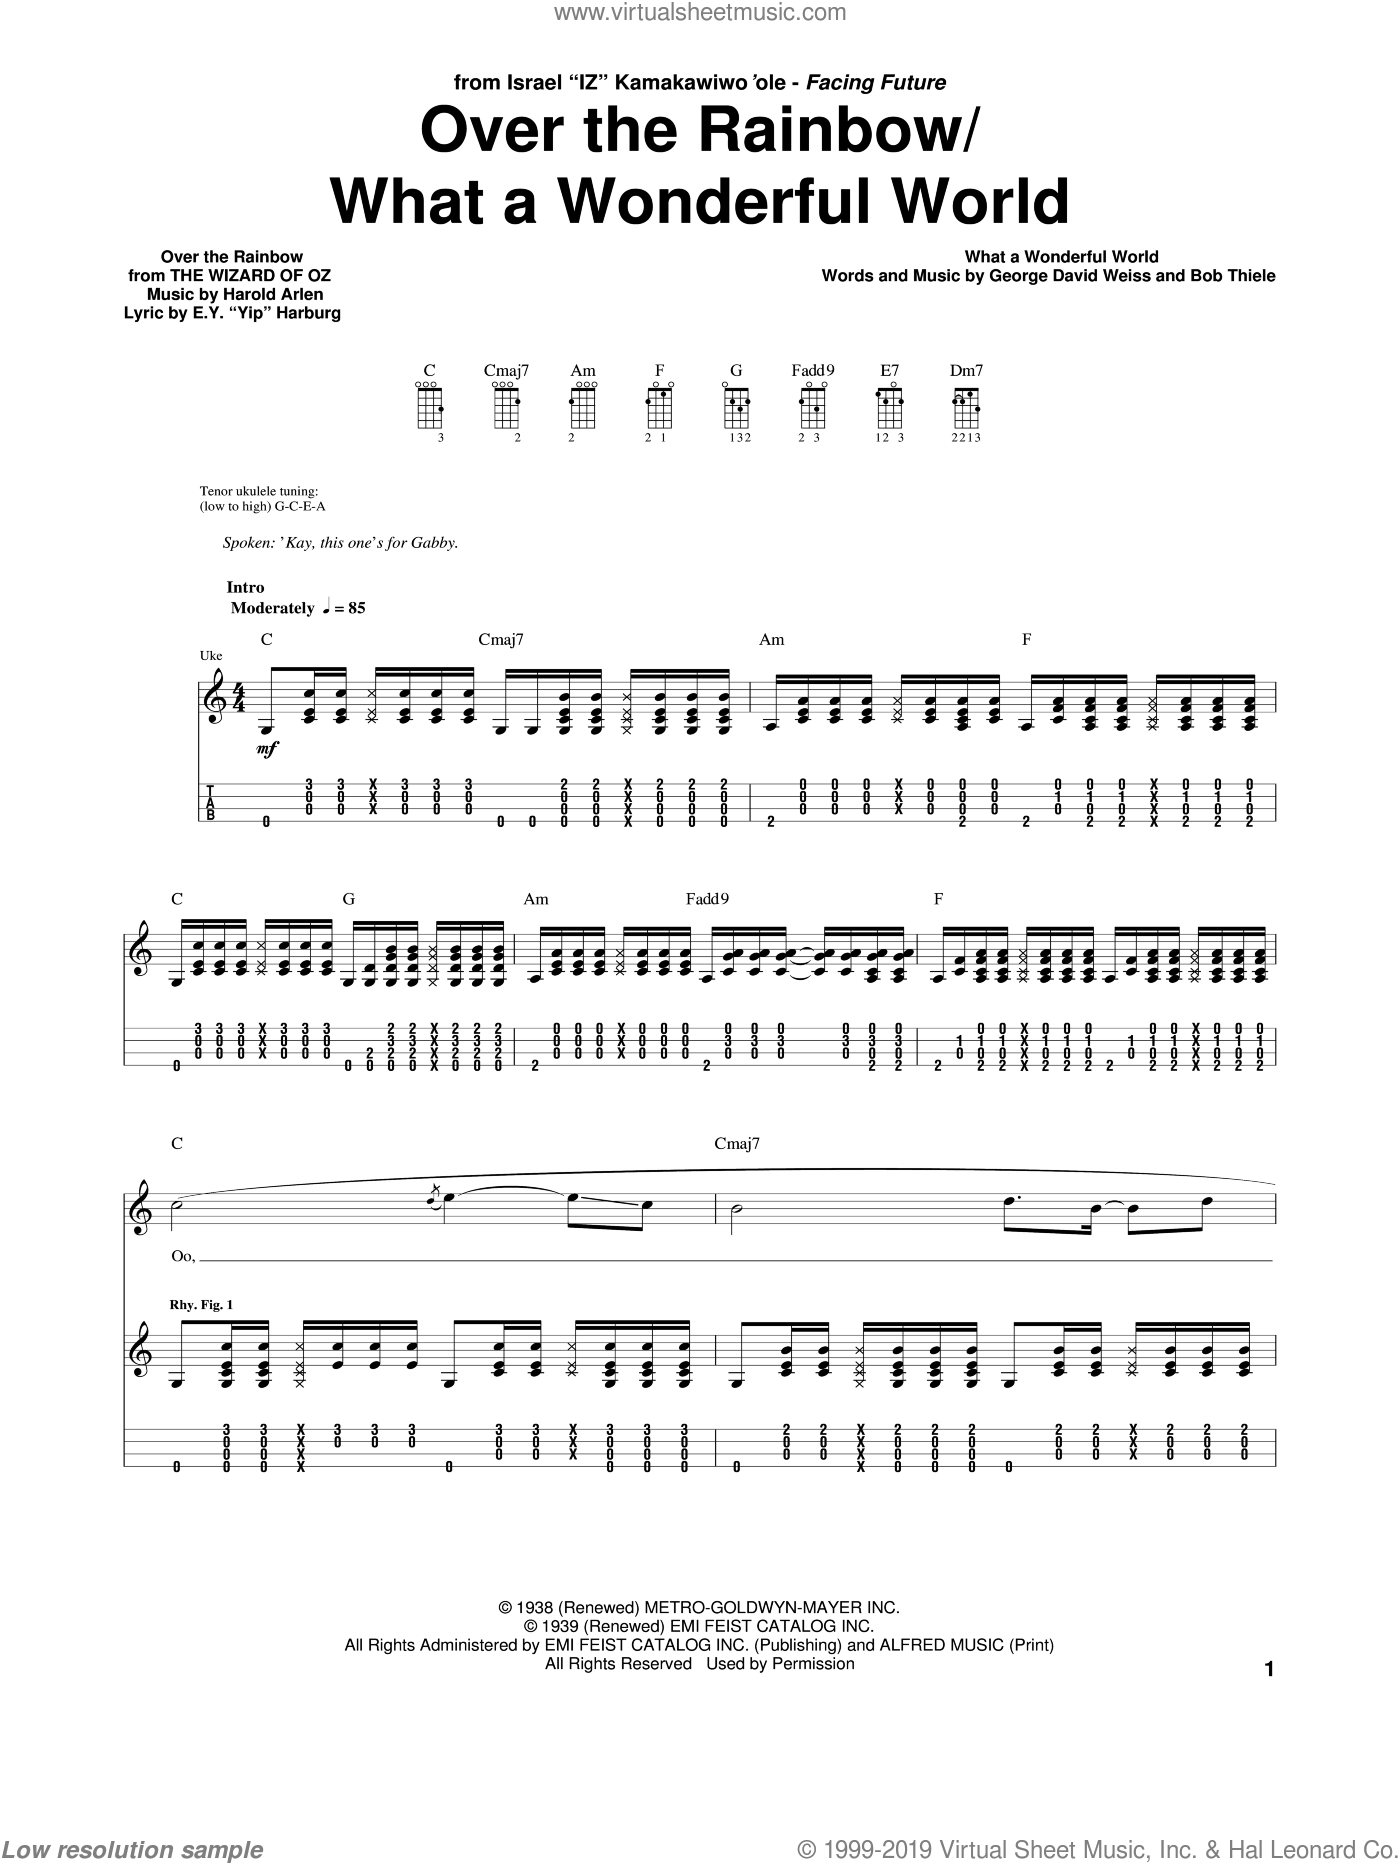 Over The Rainbow sheet music for ukulele by Harold Arlen